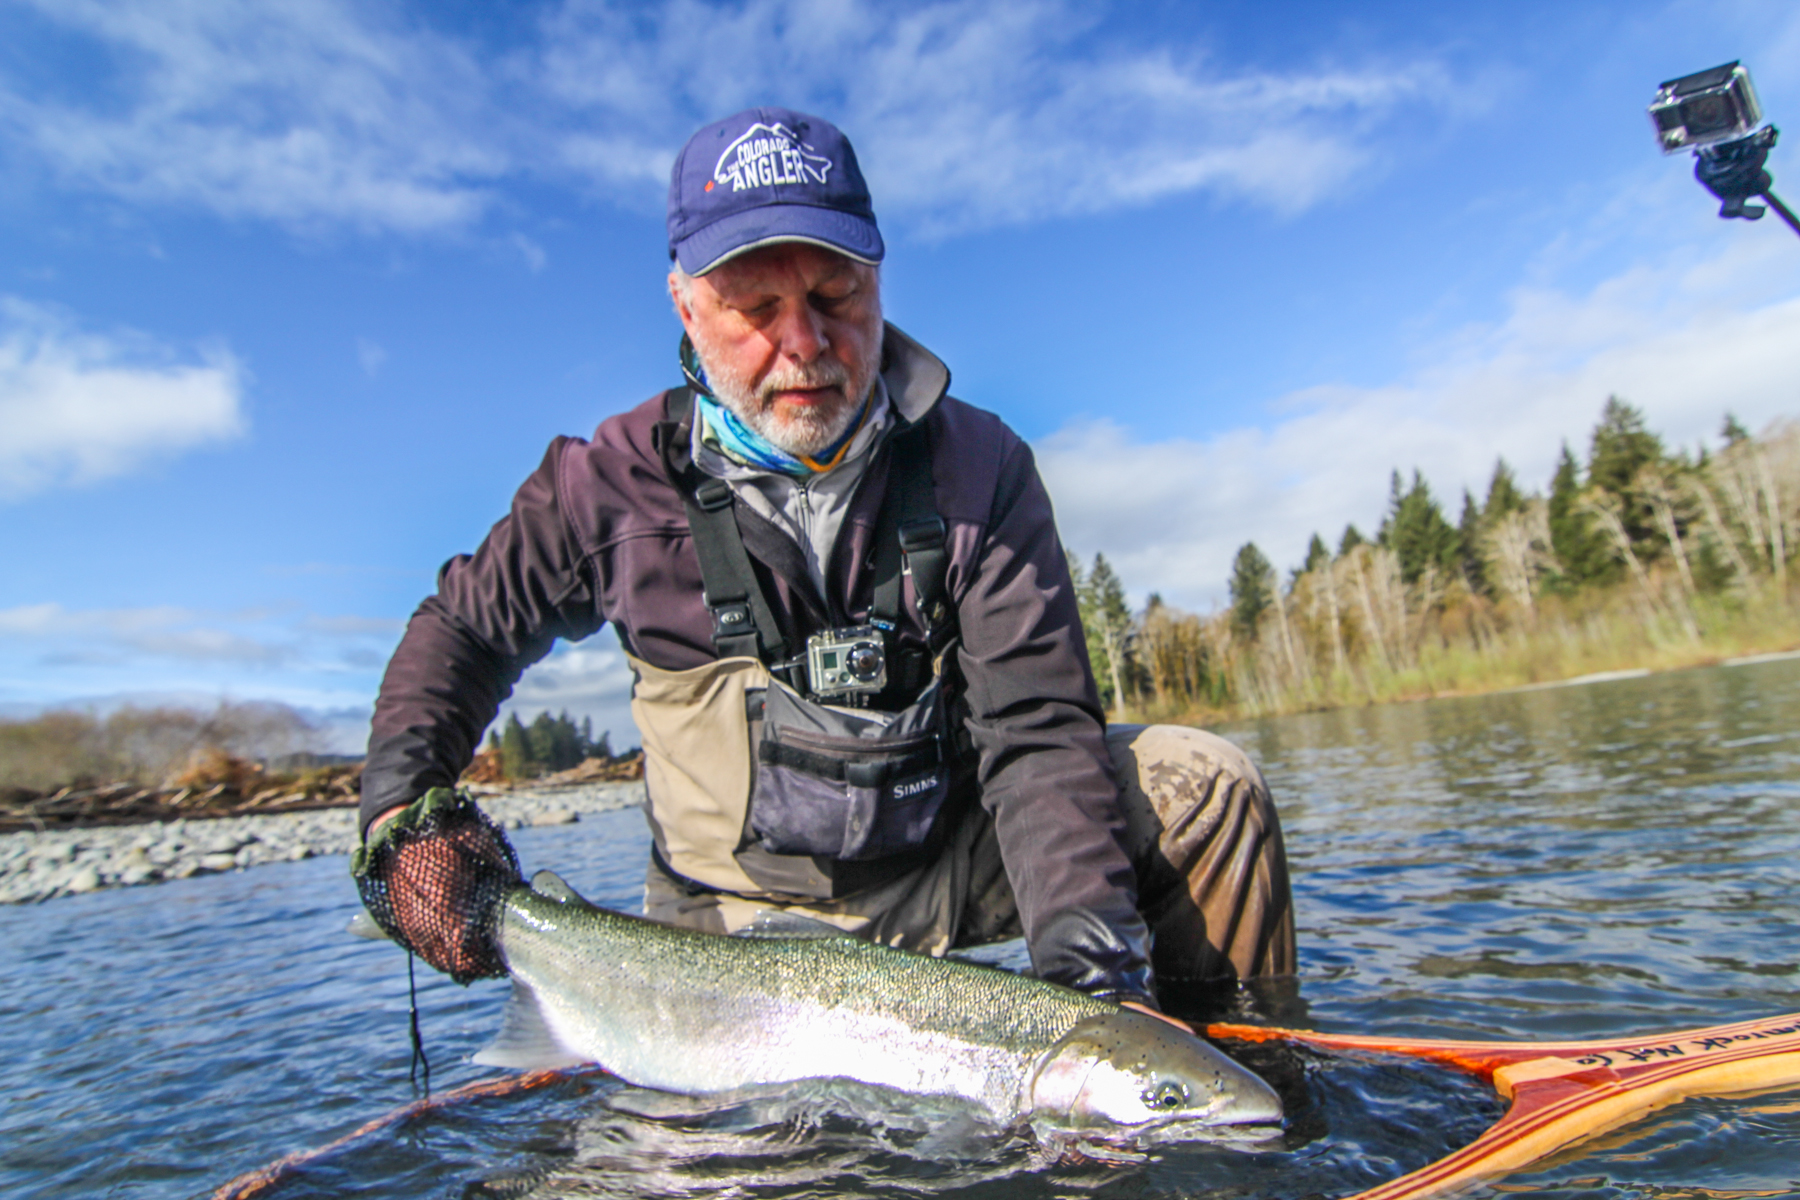 Olympic peninsula fly fishing report 3 17 15 for Fishing reports washington